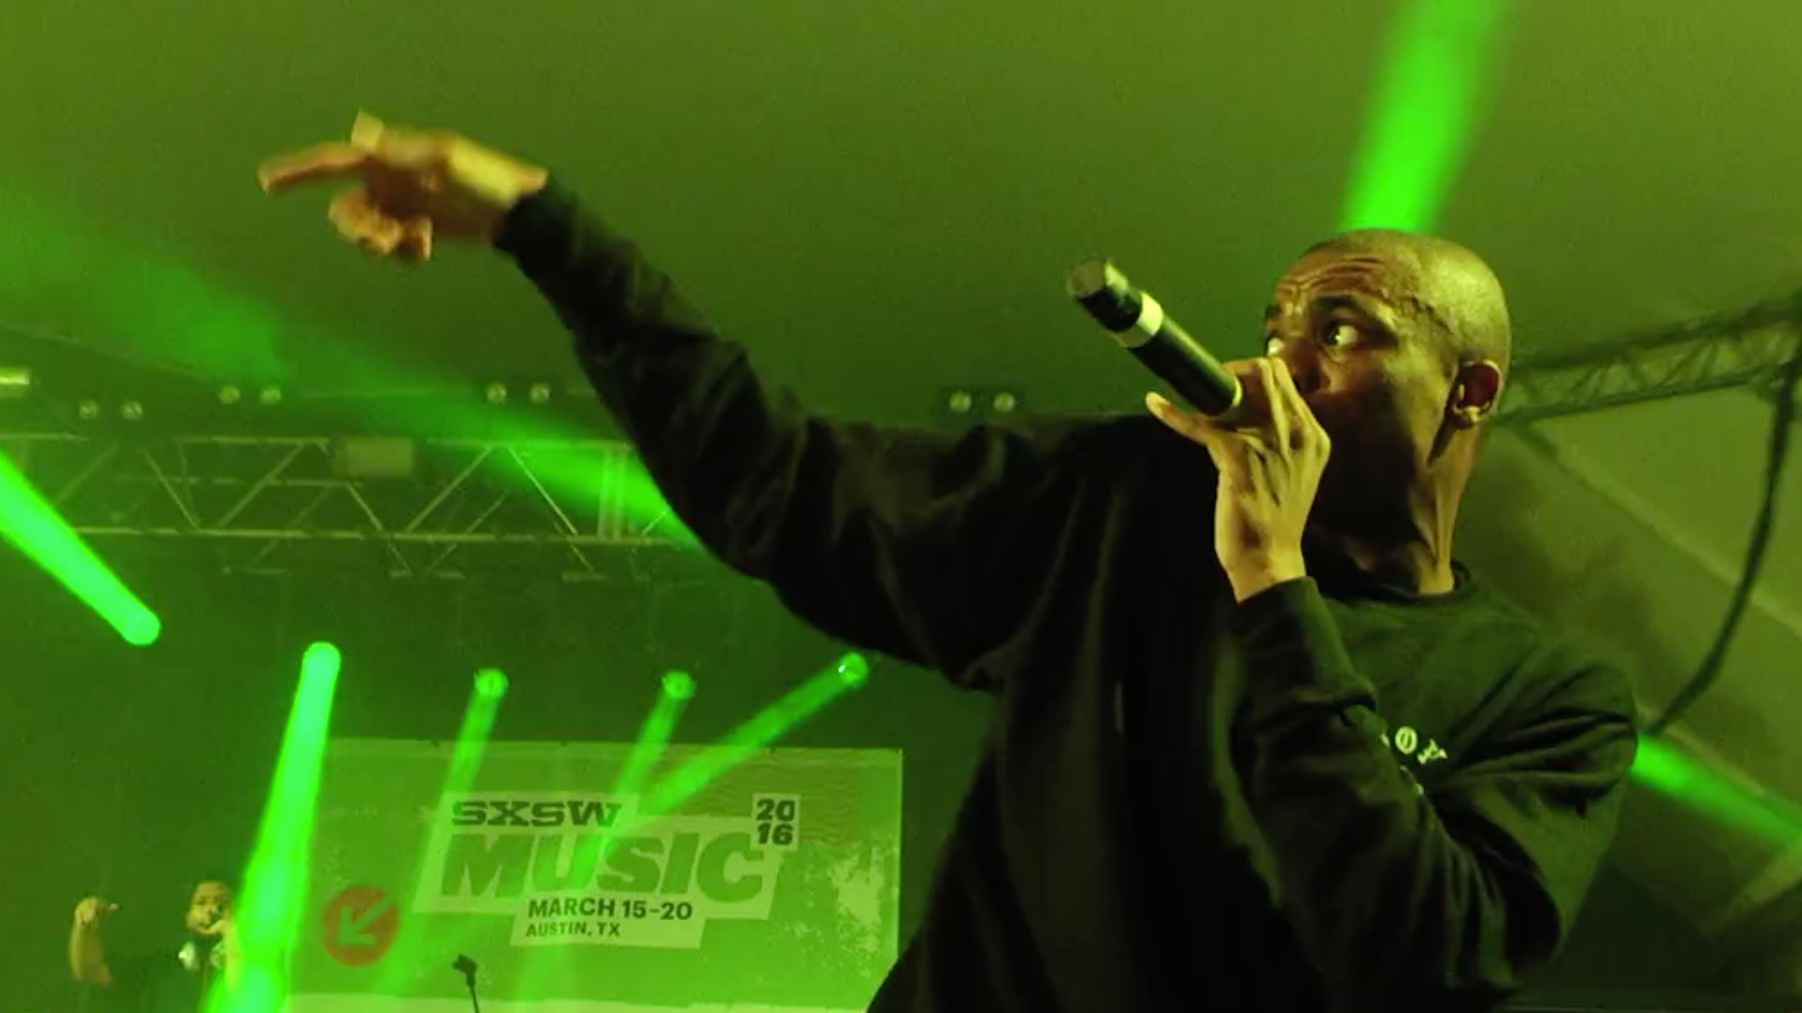 Vince Staples Norf Norf Live At Sxsw 2016 Ncpr News